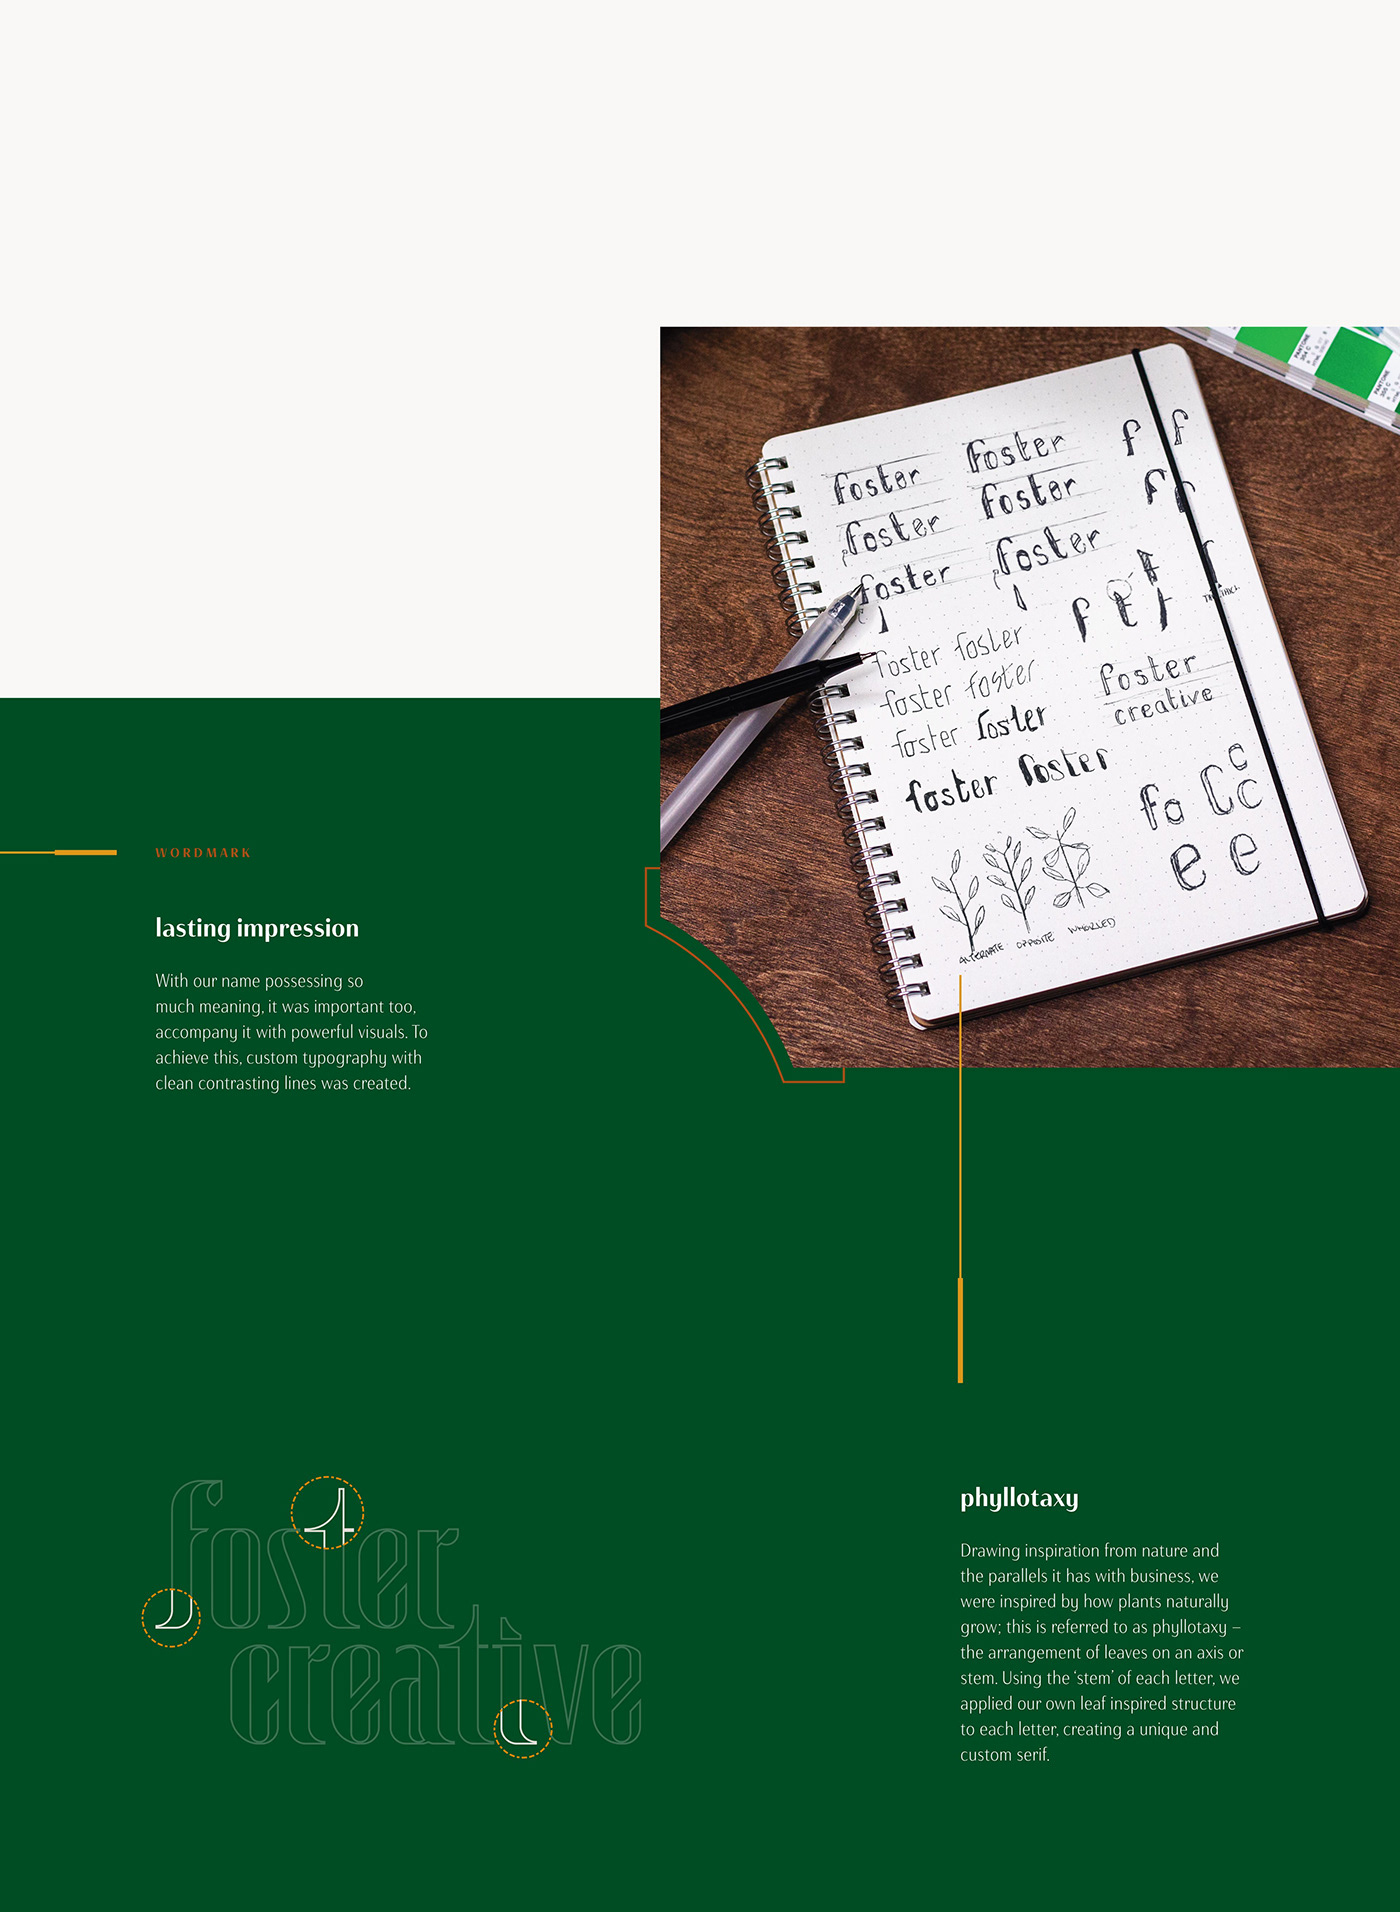 The process work on how the monogram and wordmark where developed for Foster Creative.